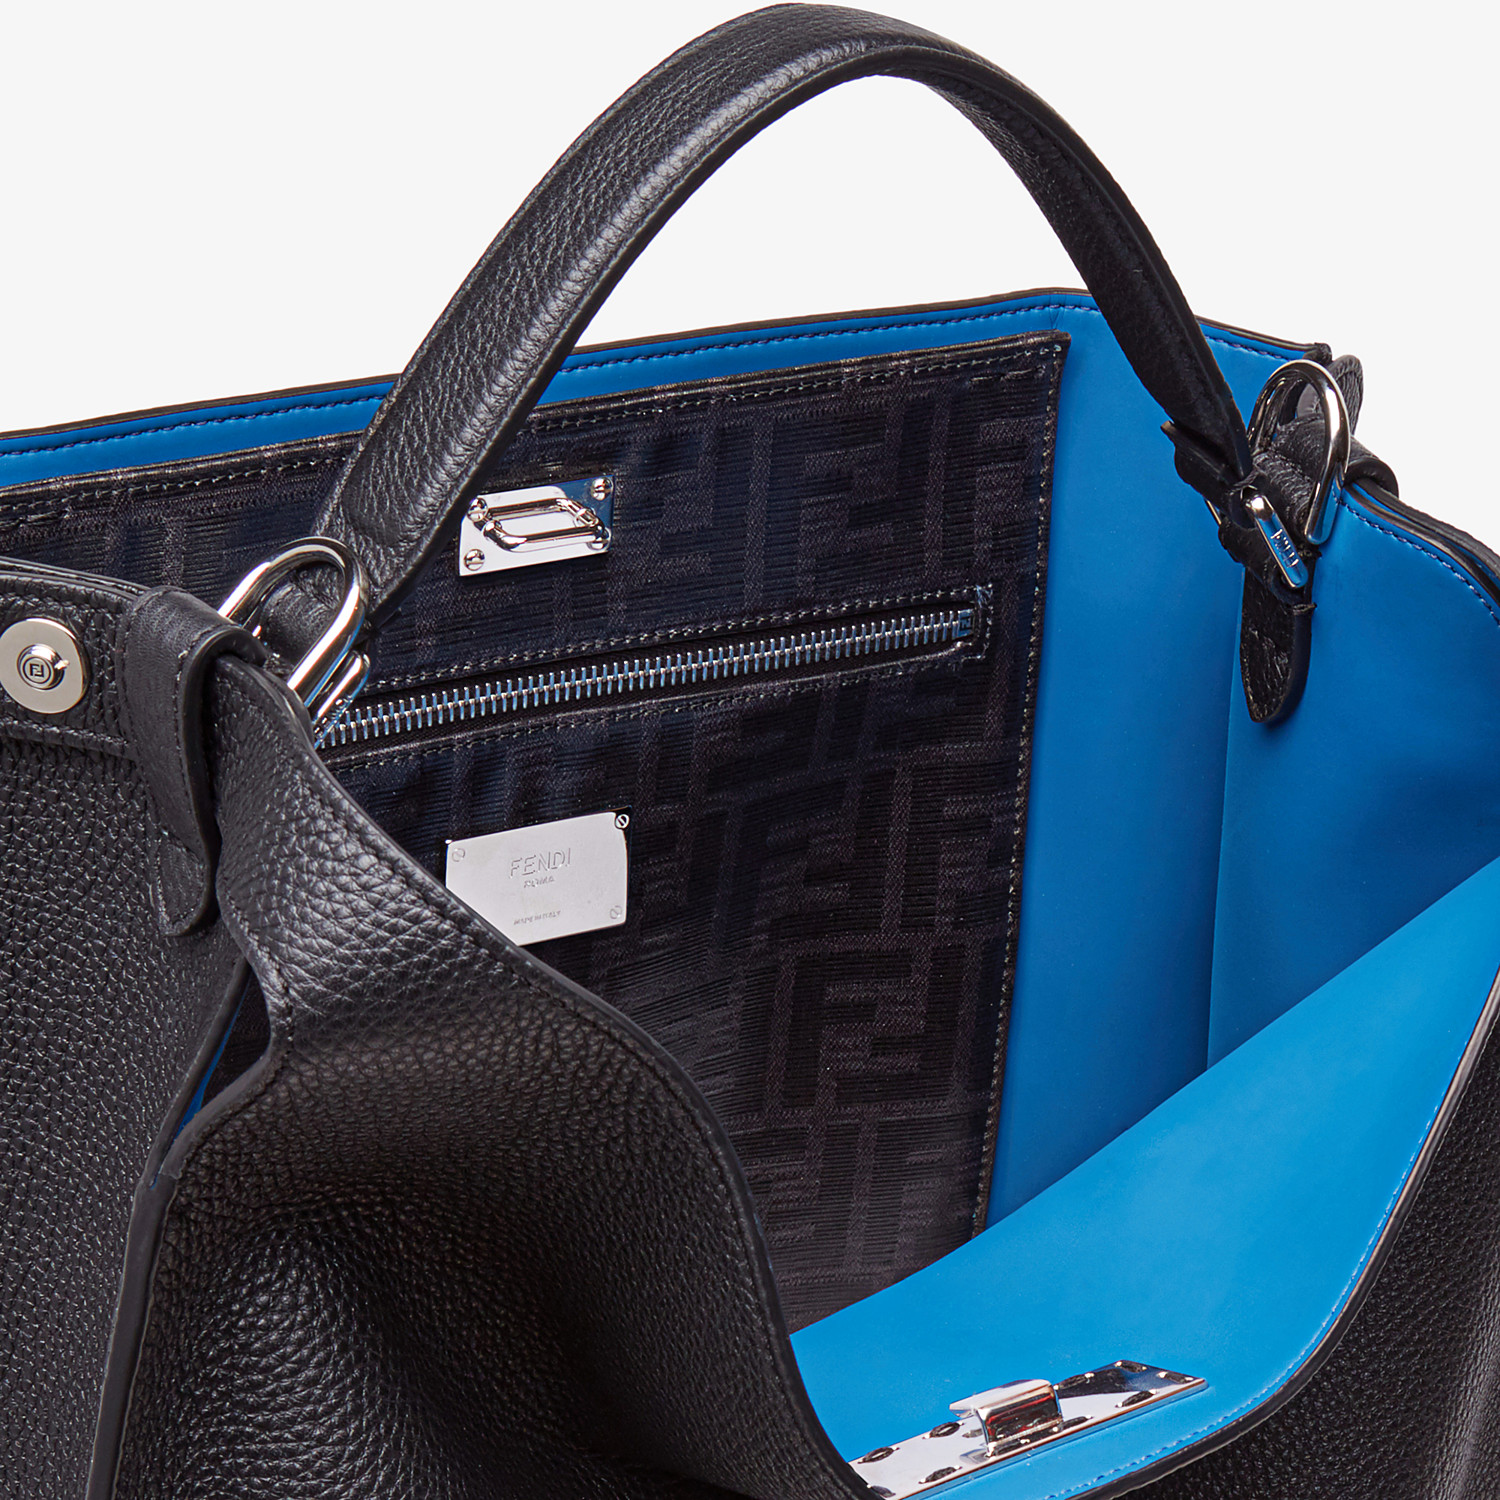 FENDI PEEKABOO X-LITE FIT - Black, calf leather bag - view 6 detail